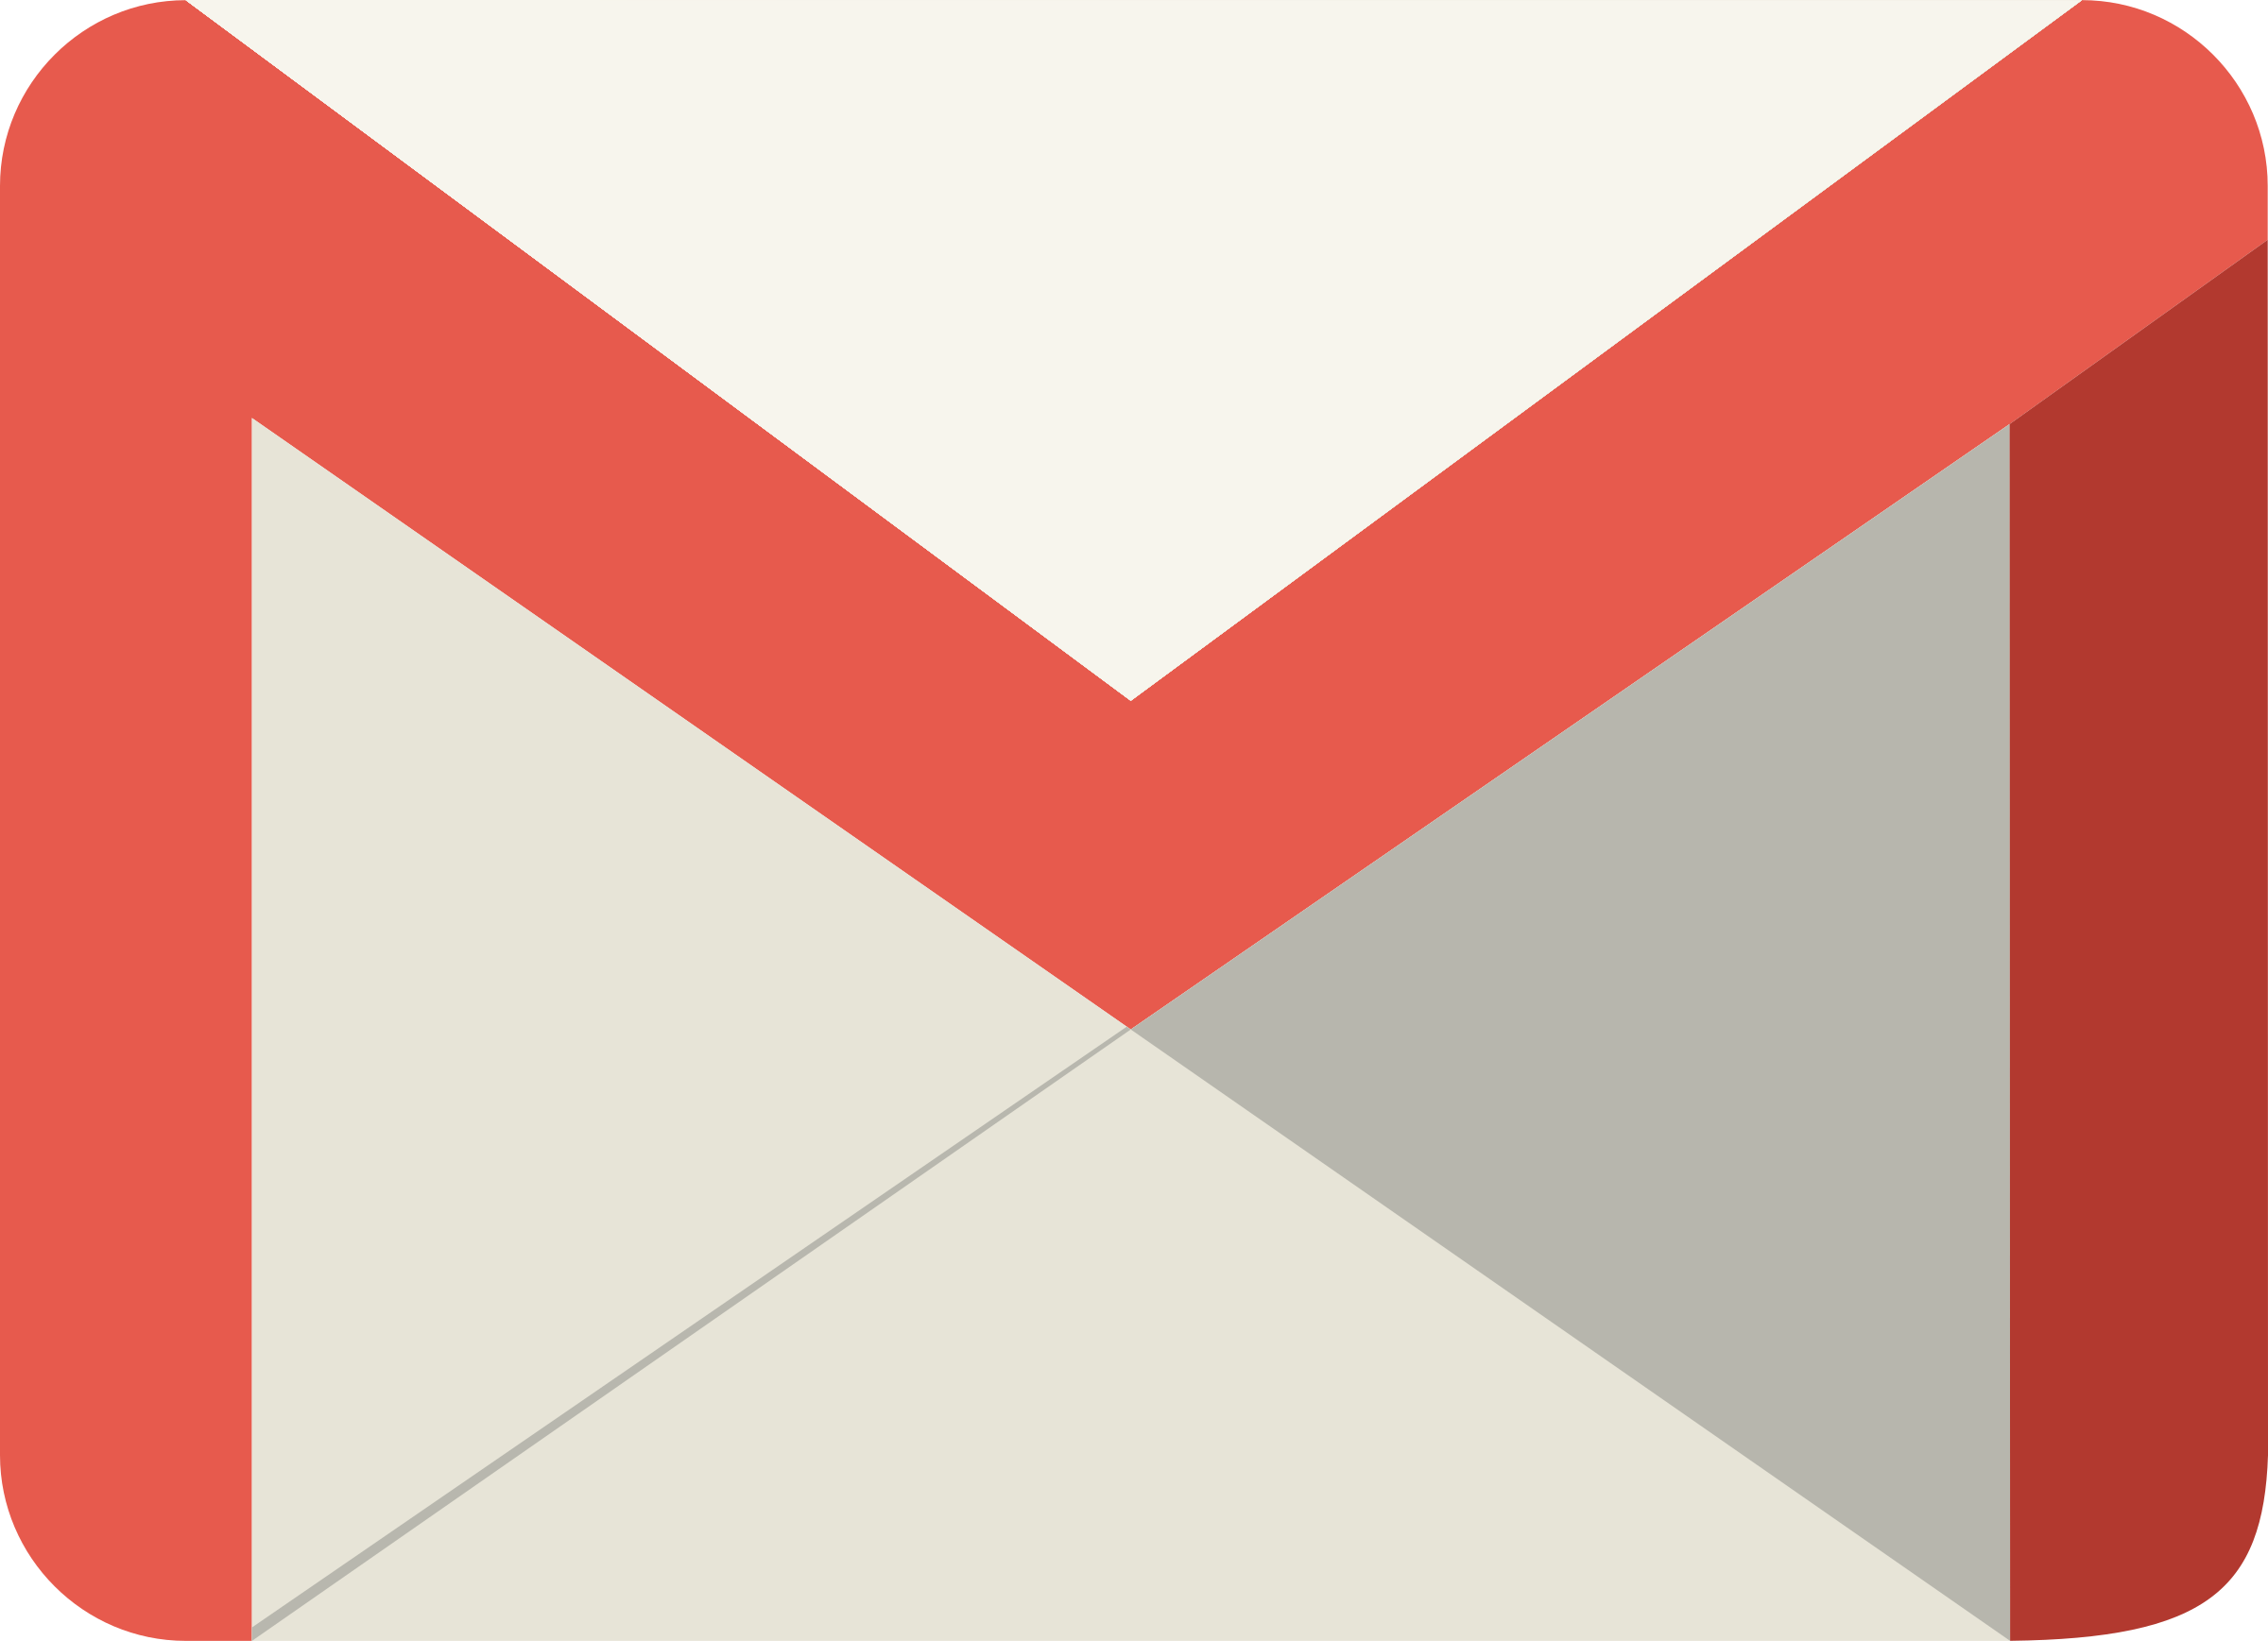 Gmail icon Logo PNG Transparent & SVG Vector.